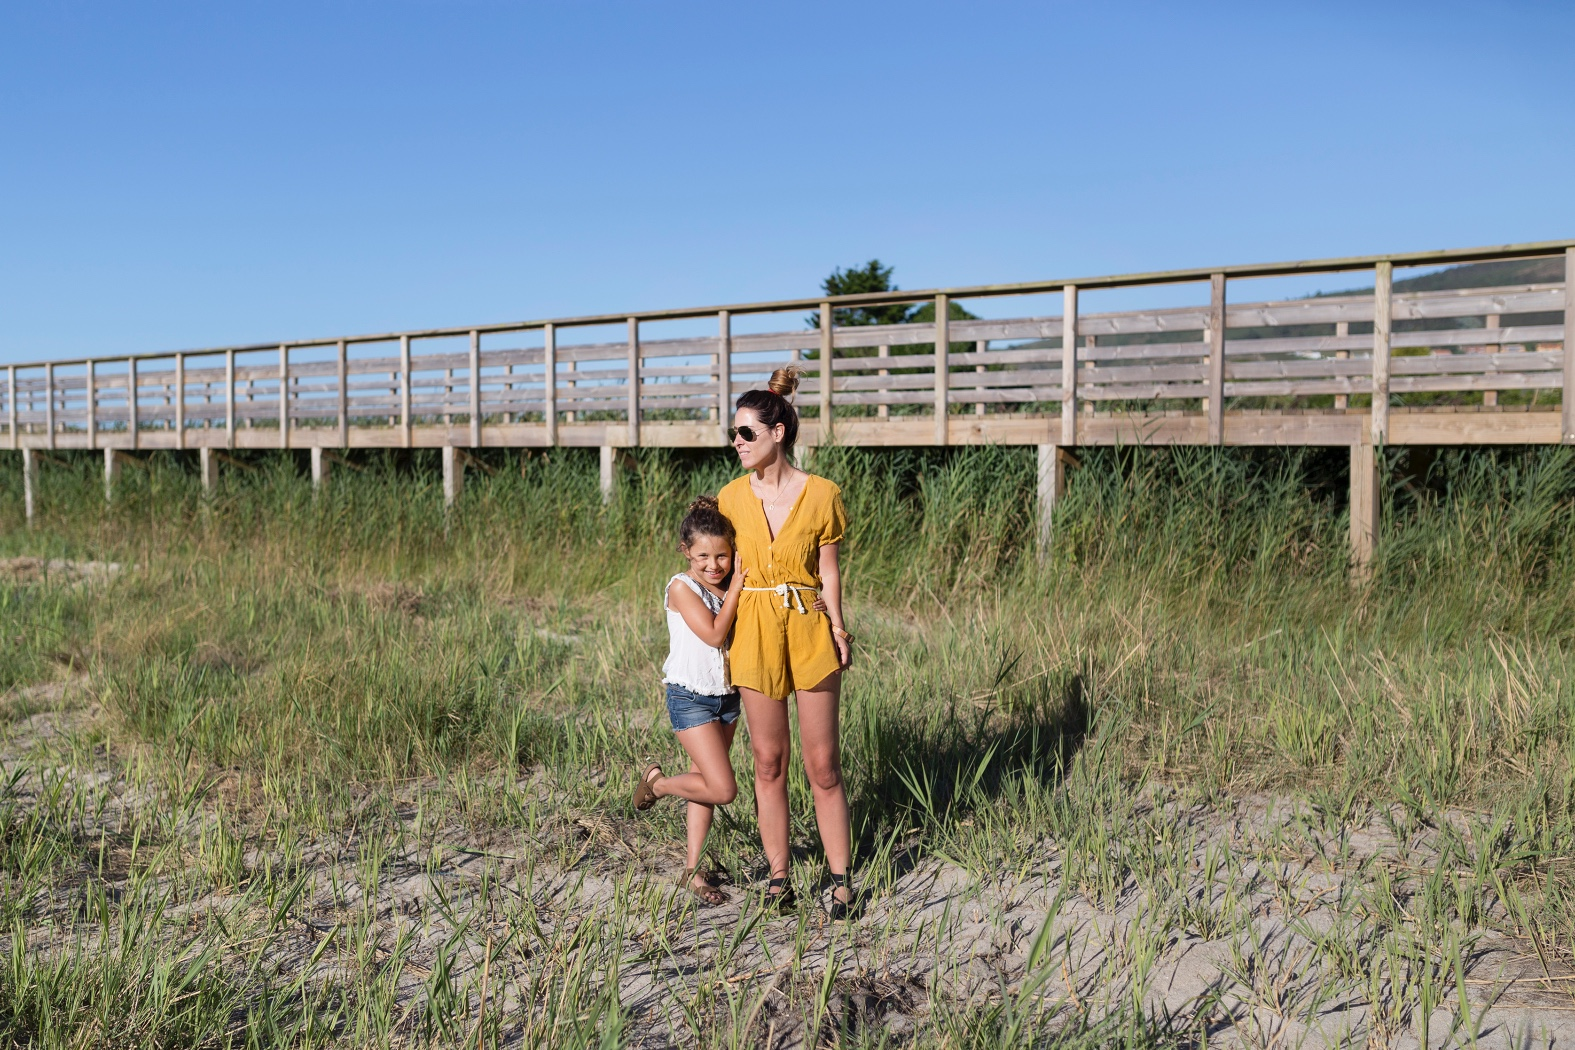 una auténtica aventura-jimena and me-playa-style-fashion-lifestyle-coruña-bloggers-madre e hija -stylelovely-descalzaporelparque-ZARA -Mango Kids-Zippy-ZARA KIDS-rayban